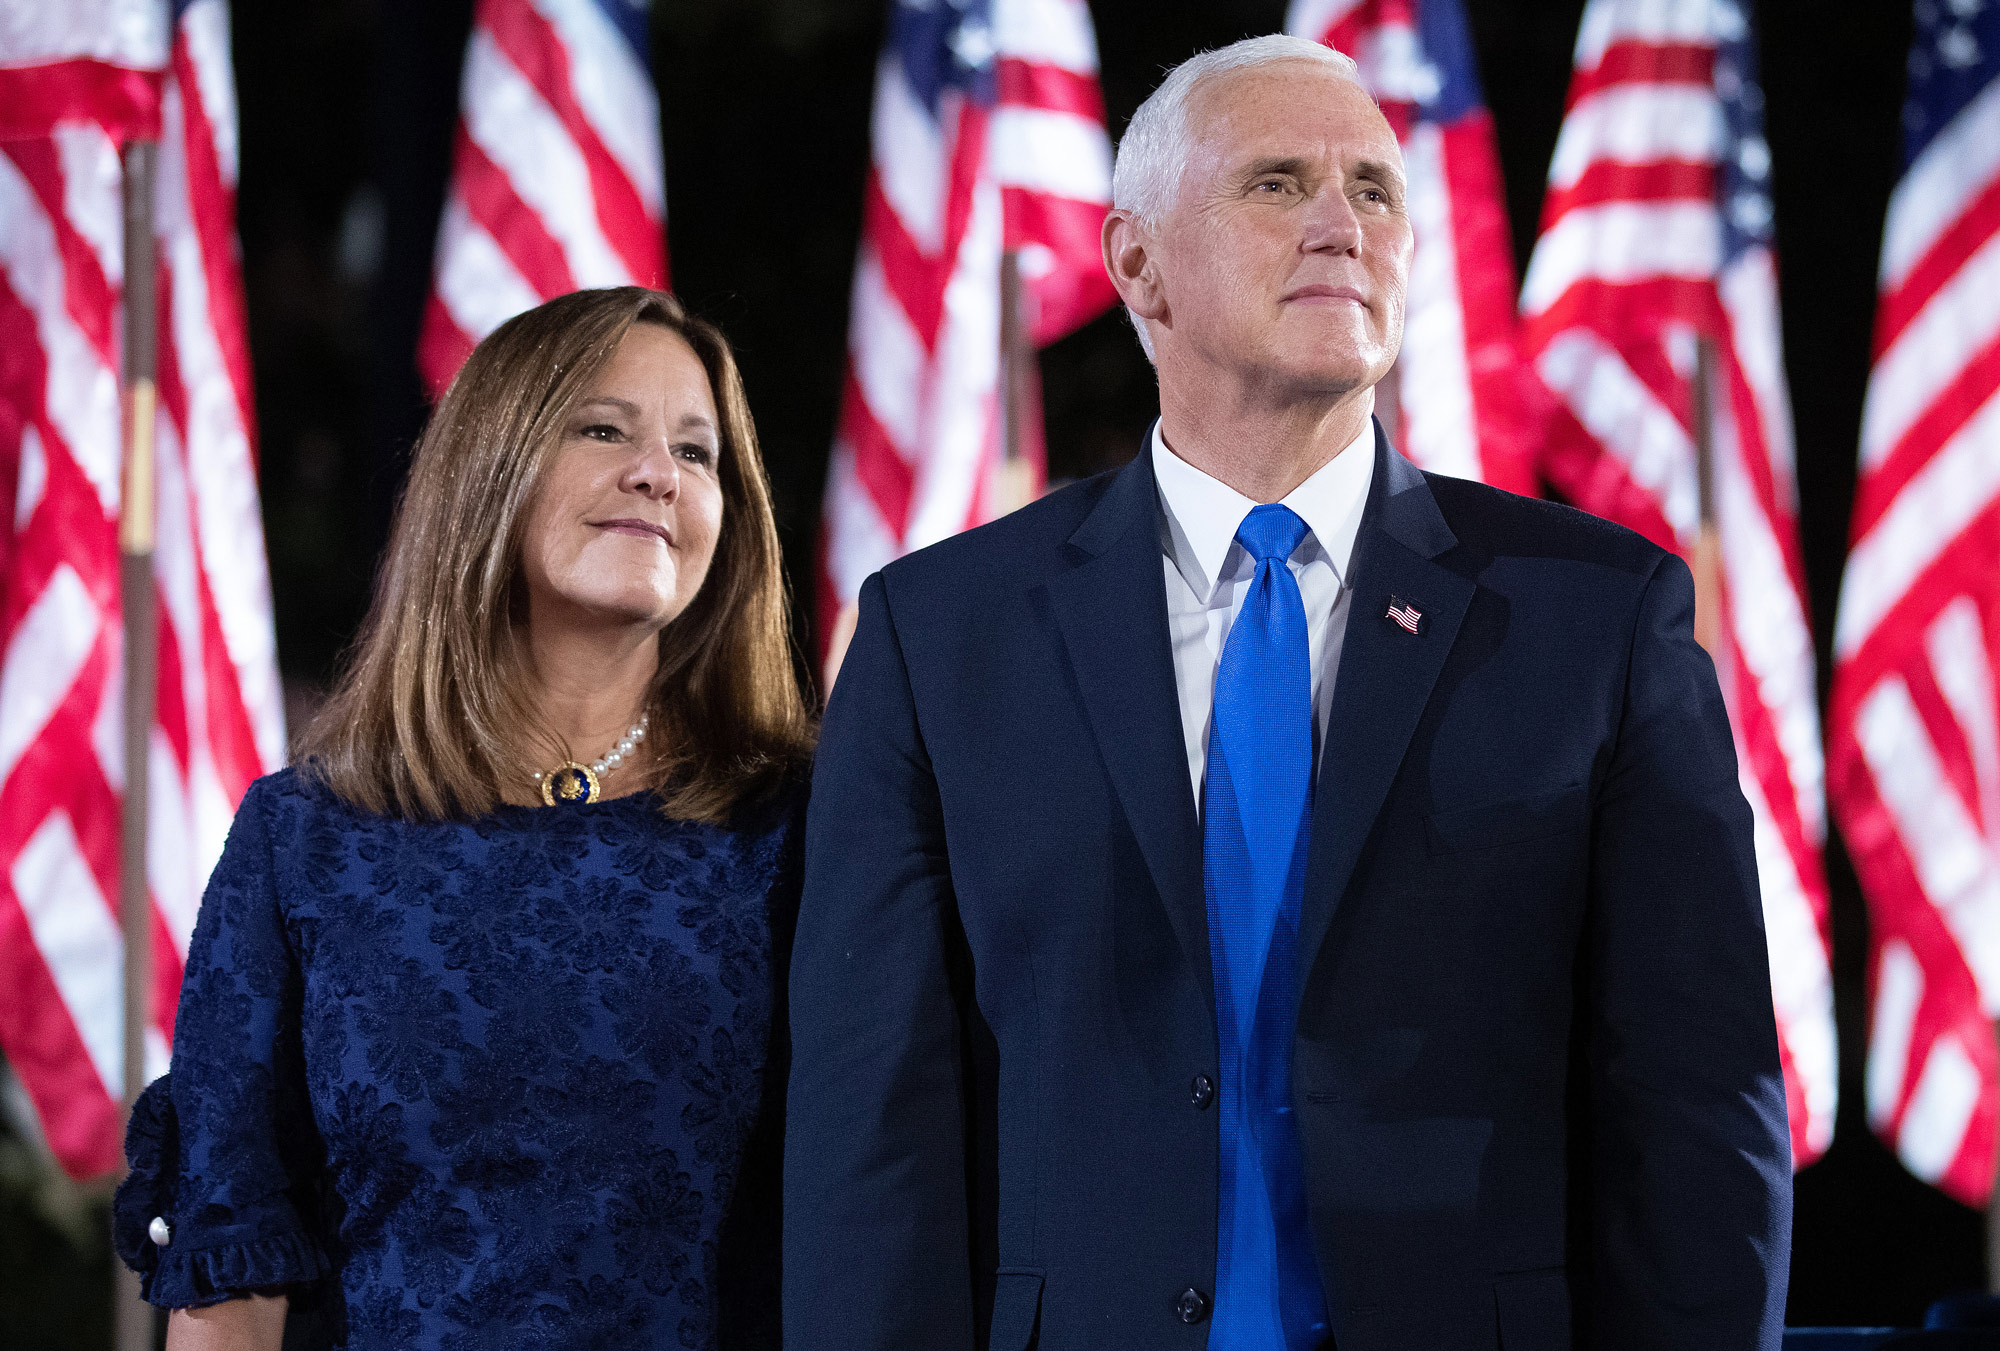 Vice President Mike Pence and his wife Karen Pence join Trump administration officials on stage after President Donald Trump delivered his acceptance speech for the Republican presidential nomination on the South Lawn of the White House August 27 in Washington, DC.